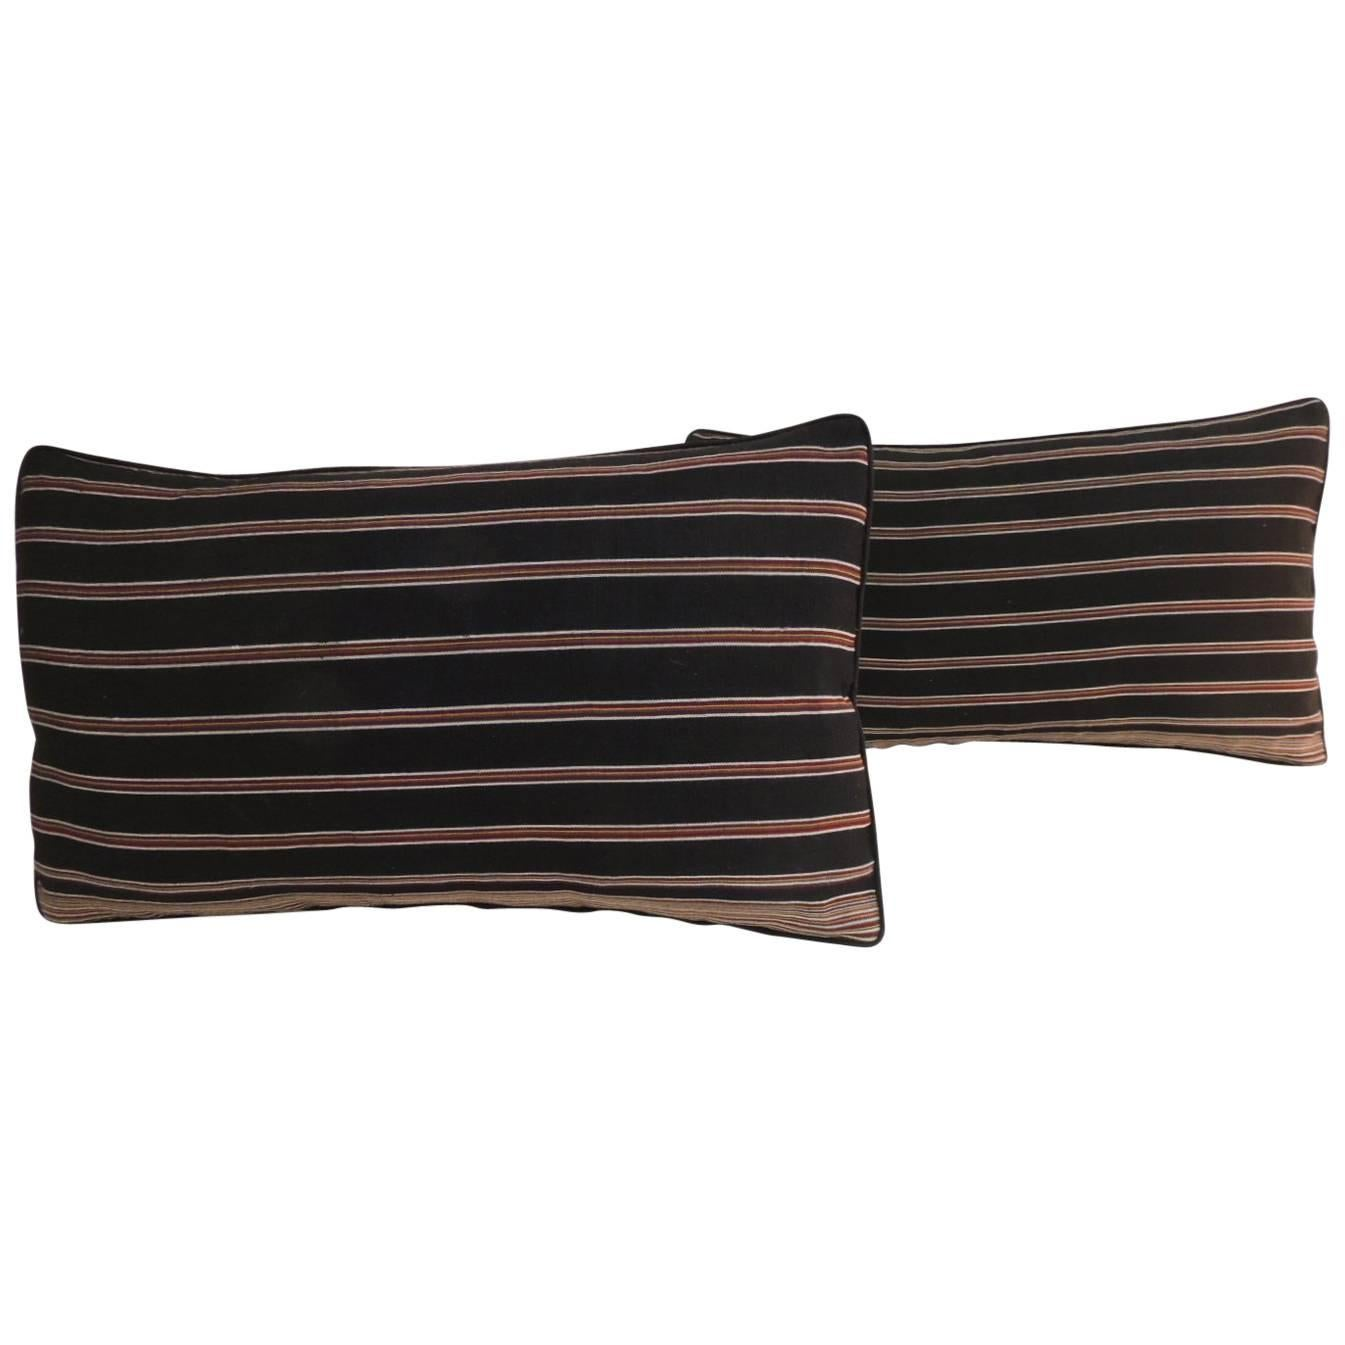 Pair of Woven Obi Red and Black Stripes Lumbar Decorative Pillows